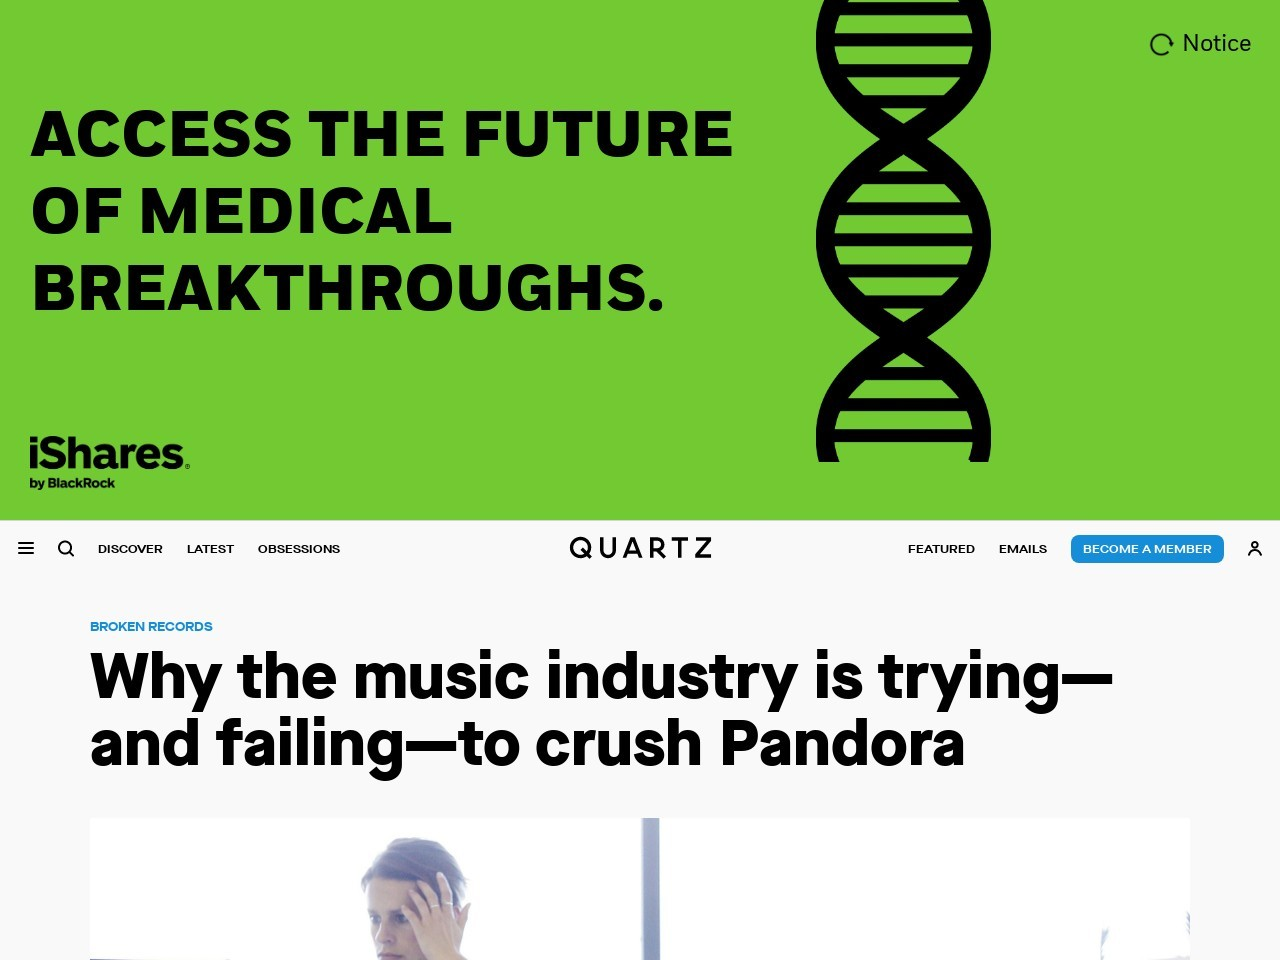 Why the music industry is trying—and failing—to crush Pandora